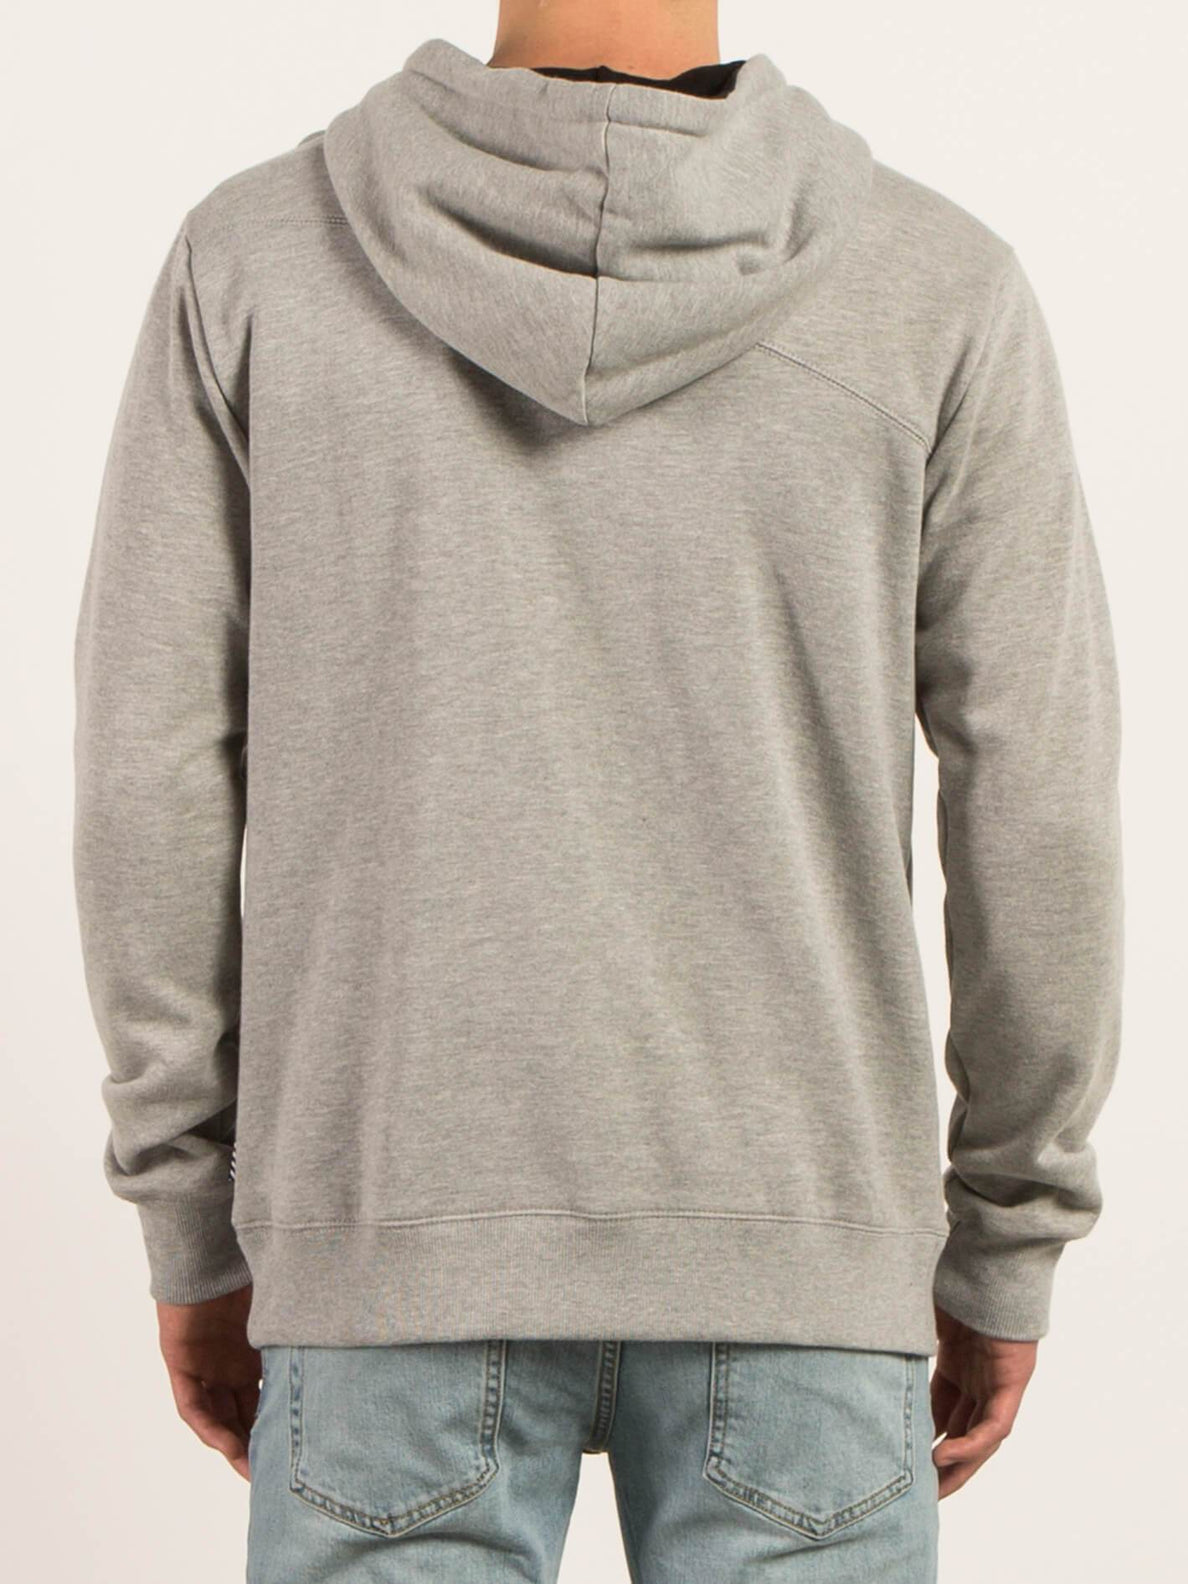 Sngl Stn  Sweatshirts - Heather Grey